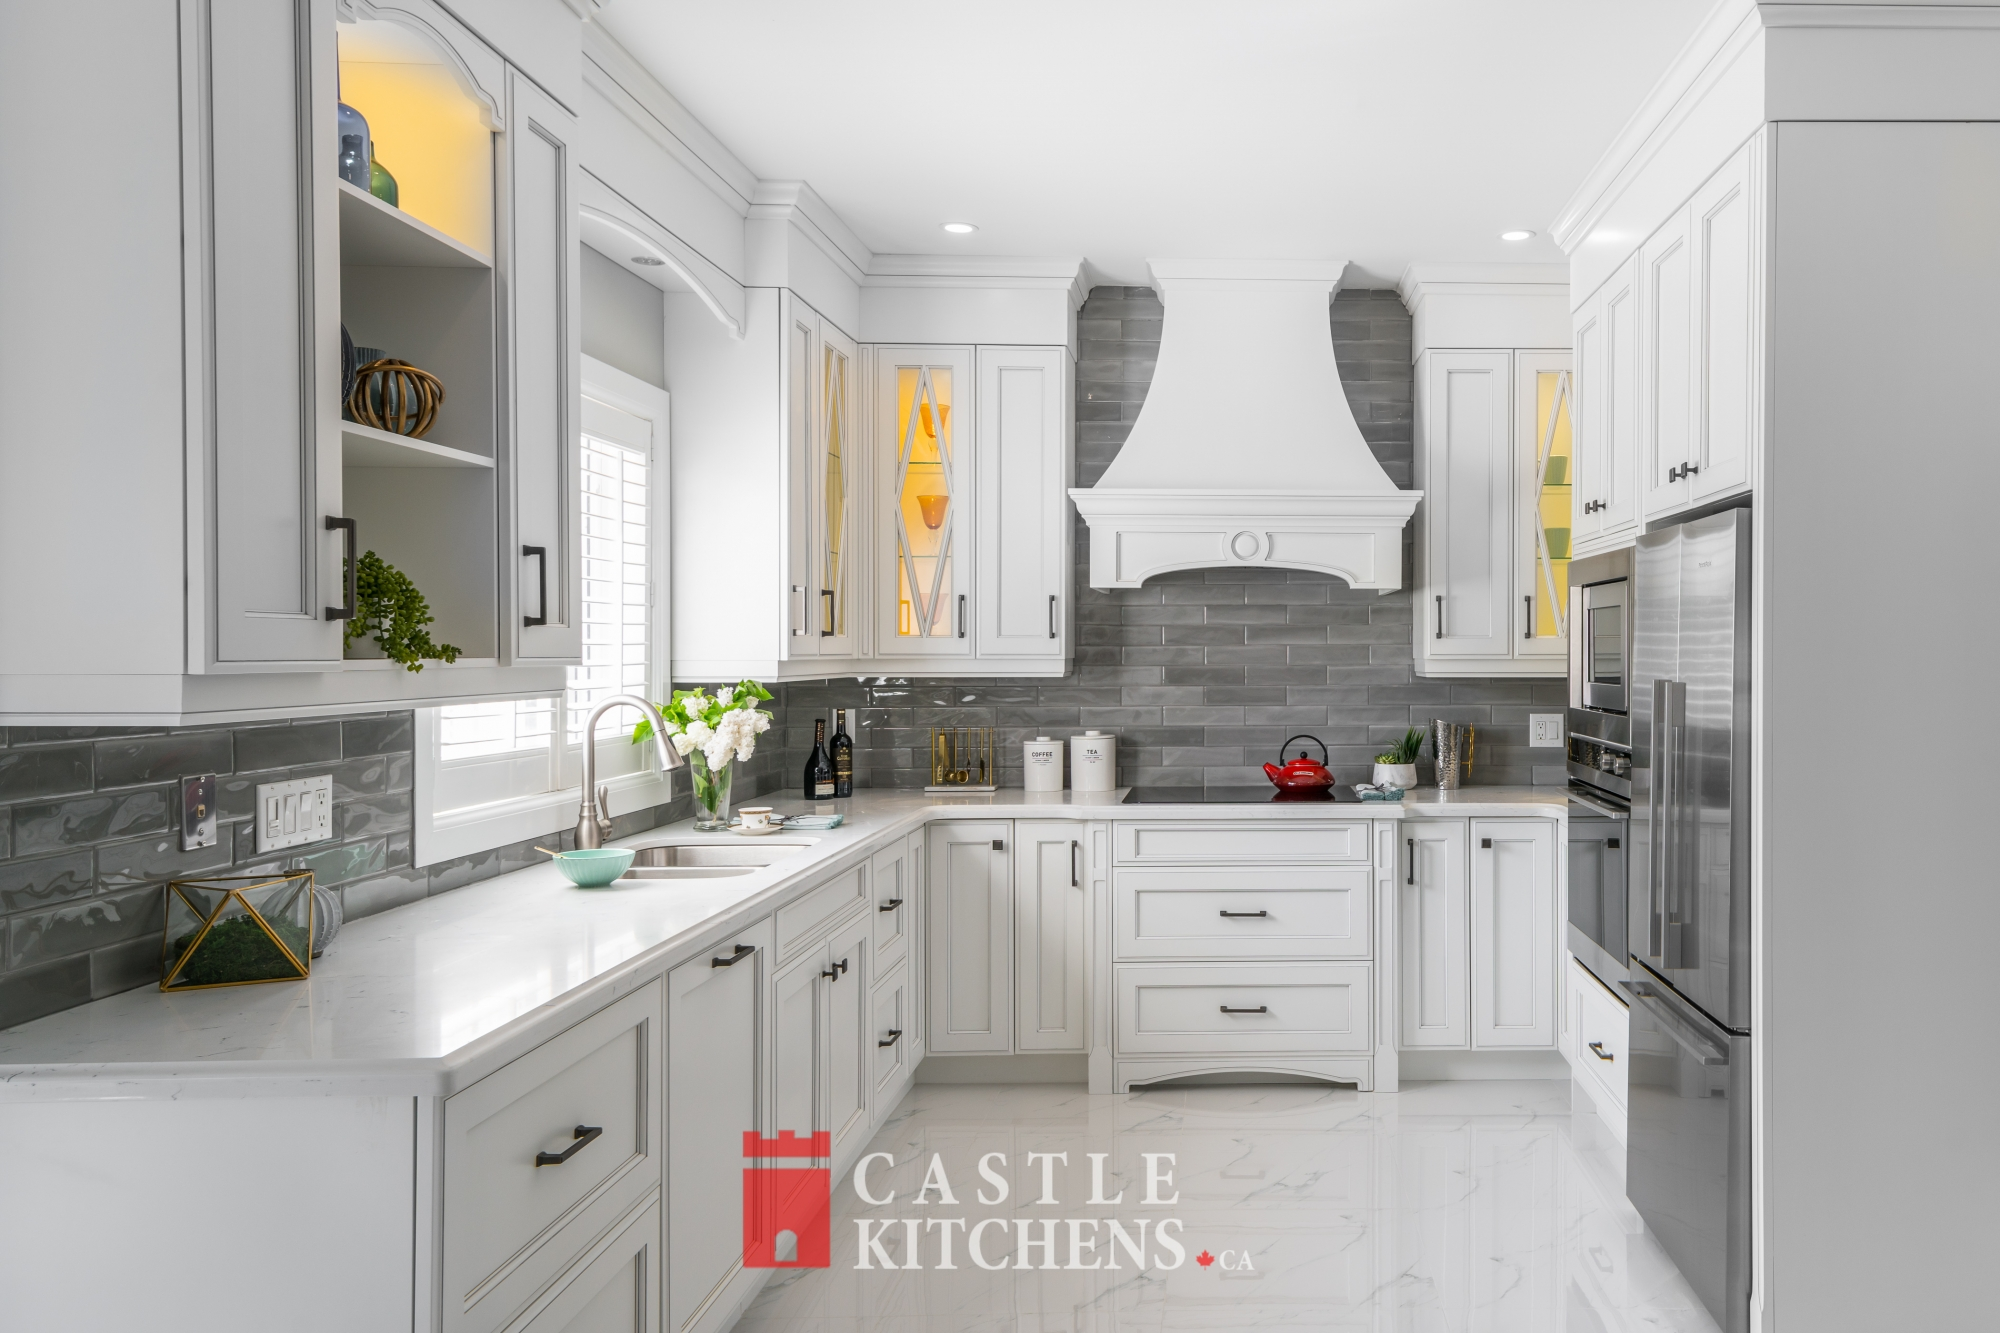 CastleKitchensTransitional Kitchens - CastleKitchens